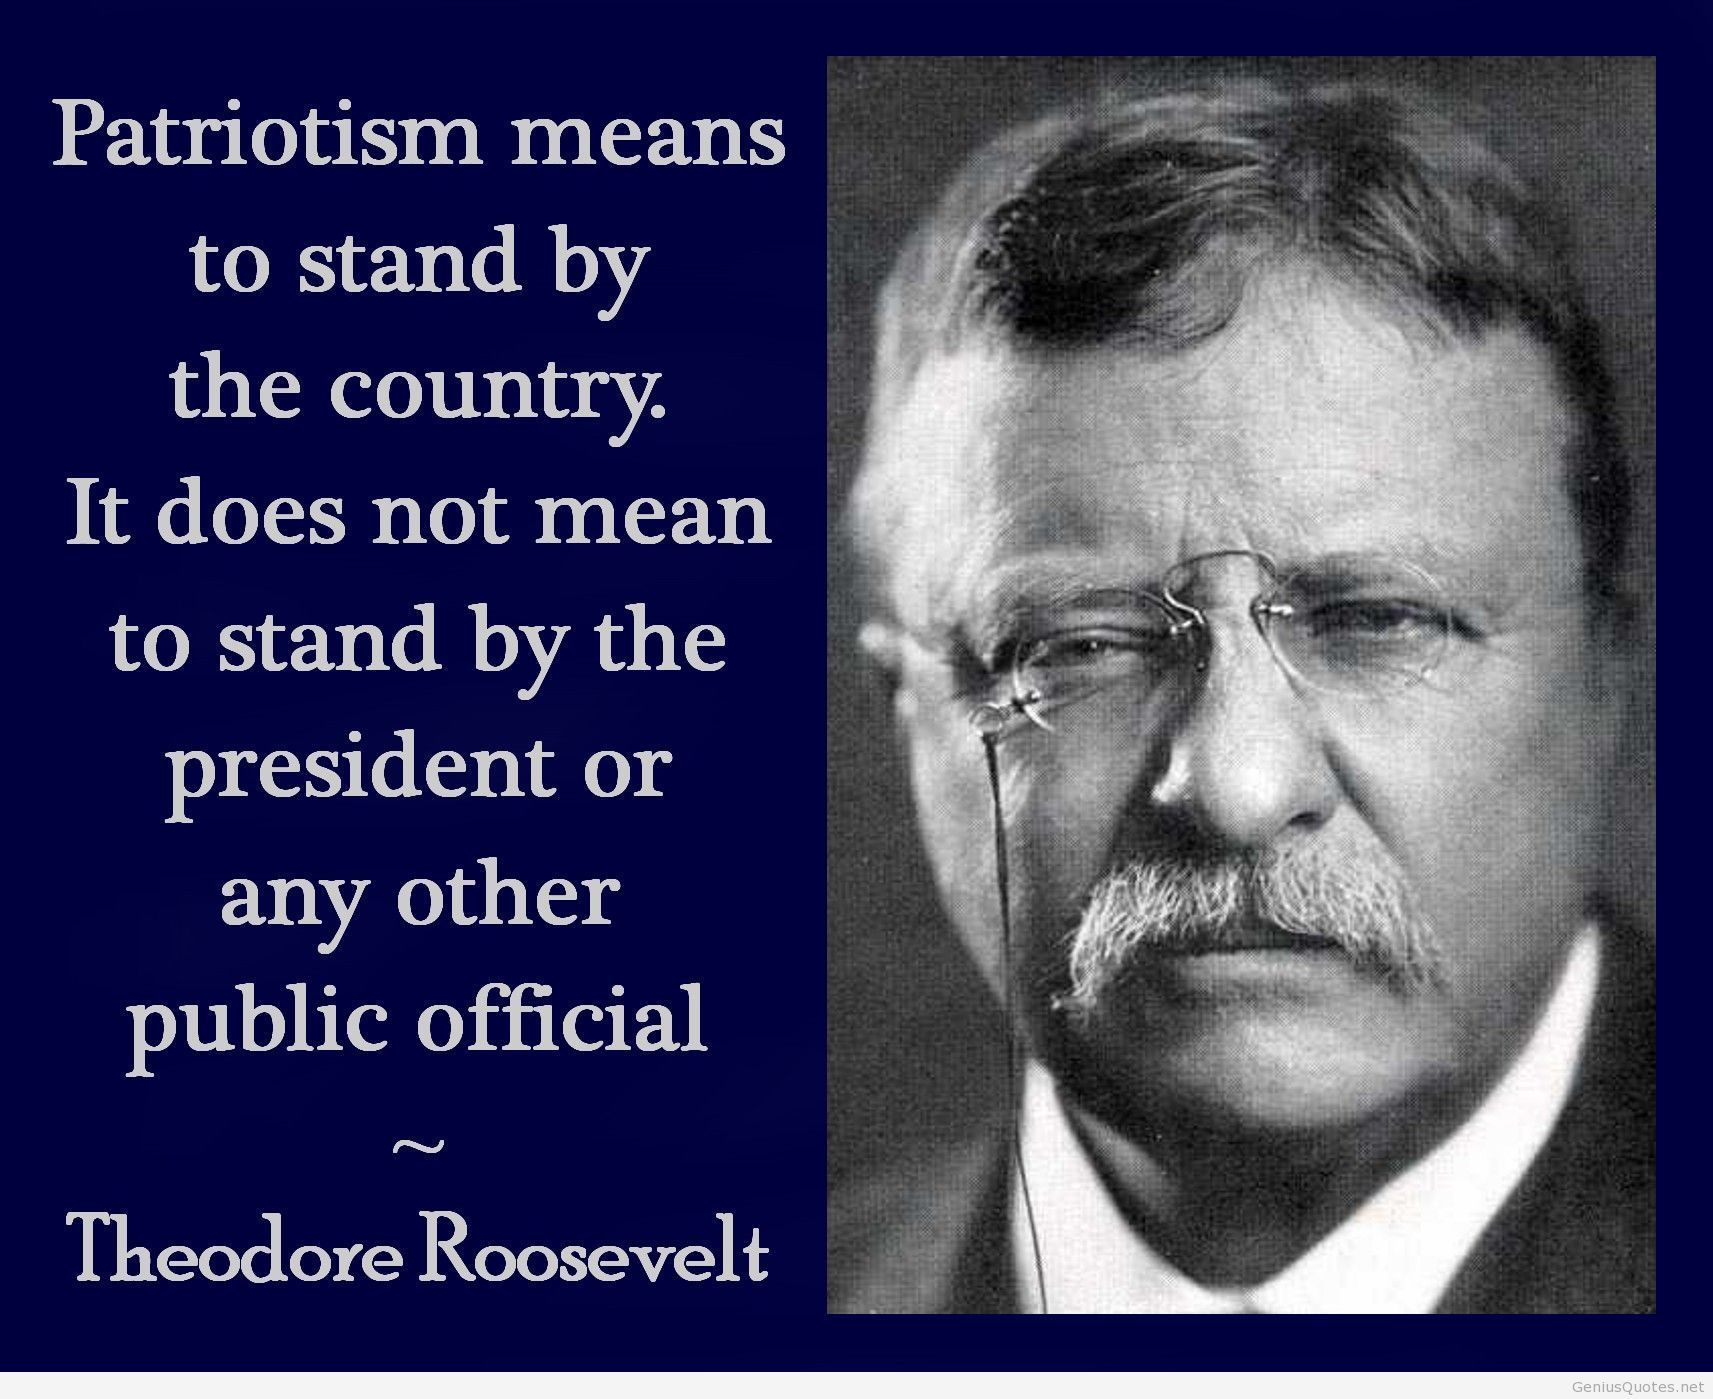 Teddy Roosevelt Quotes Theodore Roosevelt  Quote  America  Pinterest  Roosevelt